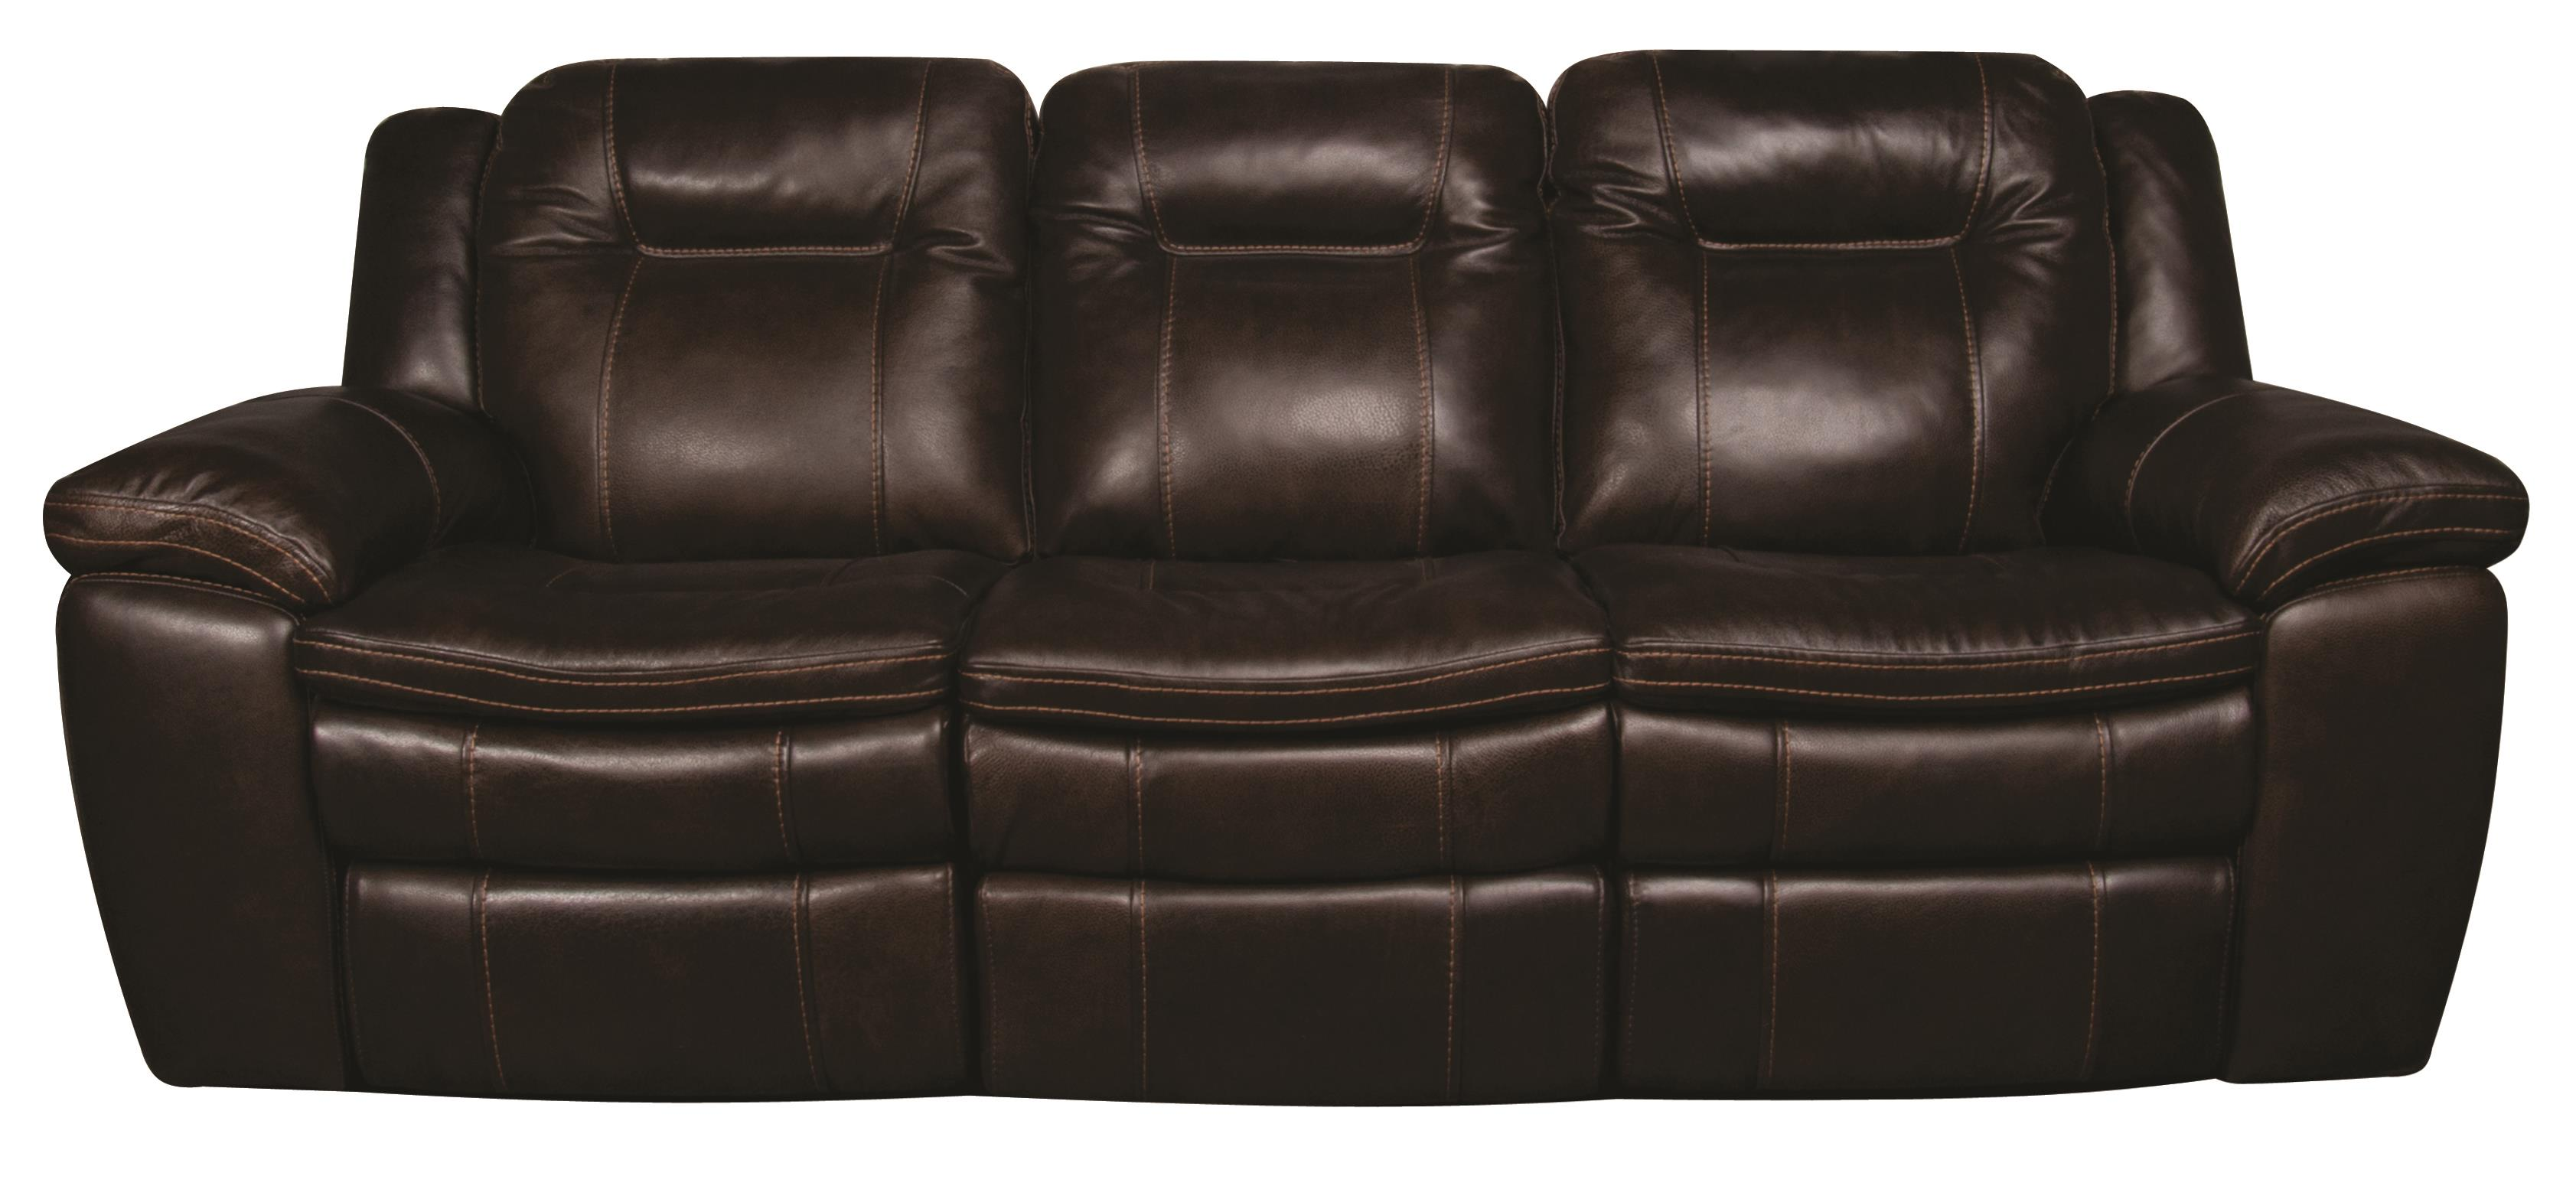 Morris Home Furnishings Heath Heath Power Leather-Match* Sofa - Item Number: 985020142